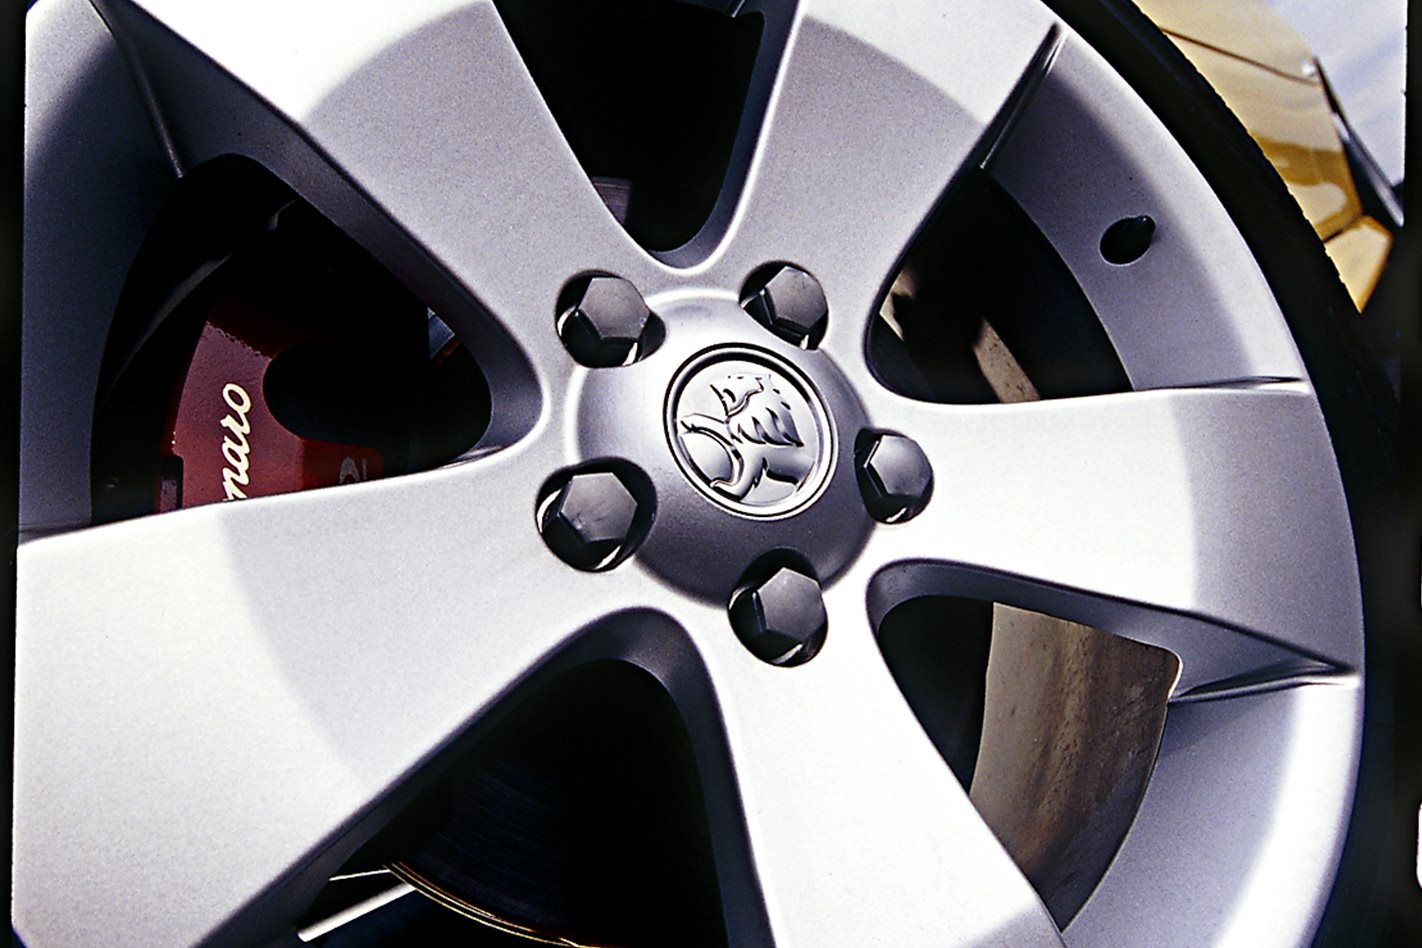 2004 Holden Monaro VZ wheels